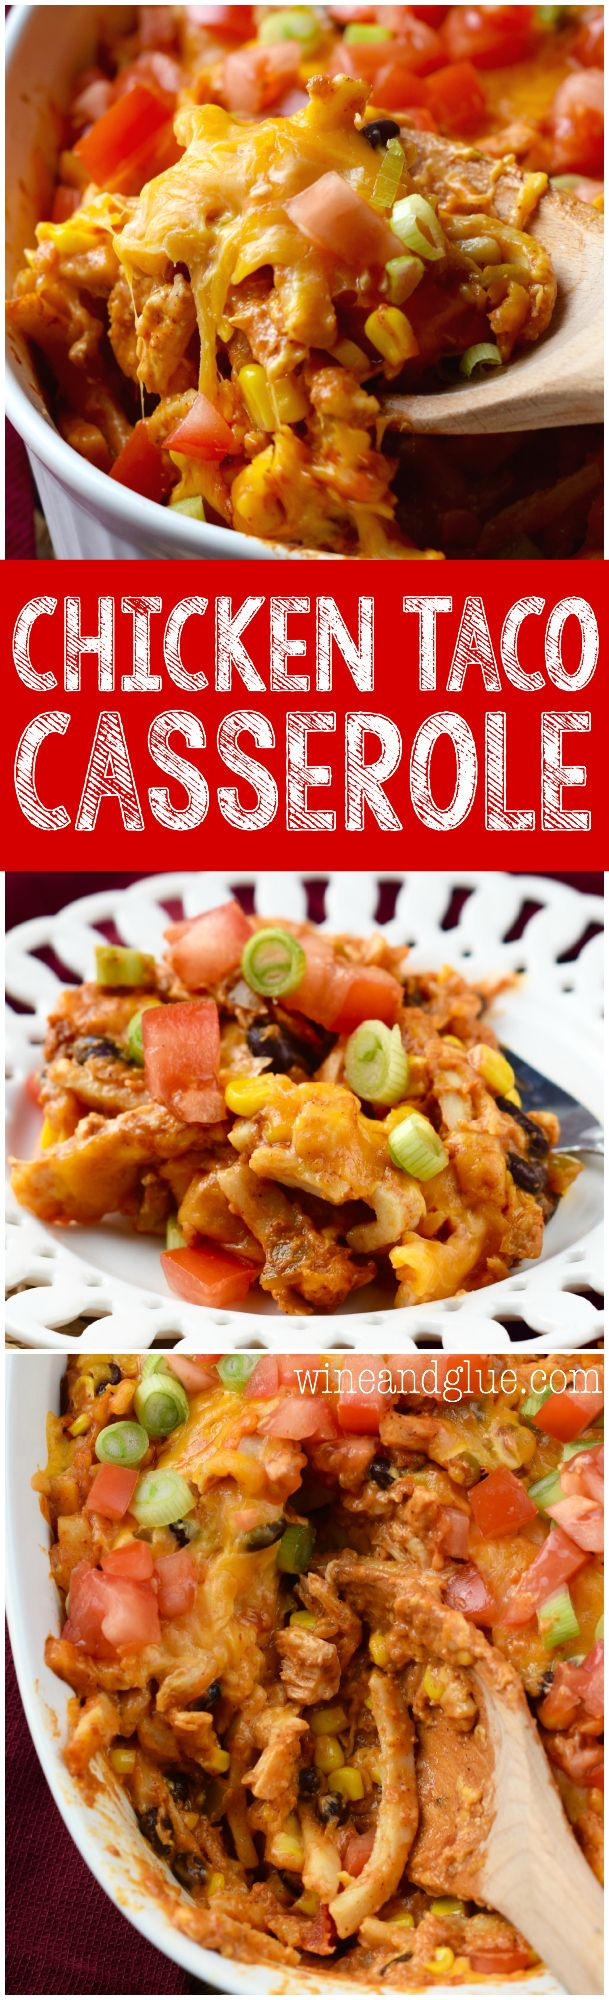 This Chicken Taco Casserole is comfort food at it's finest! Easy to make, packed with flavor, and totally delicious!: